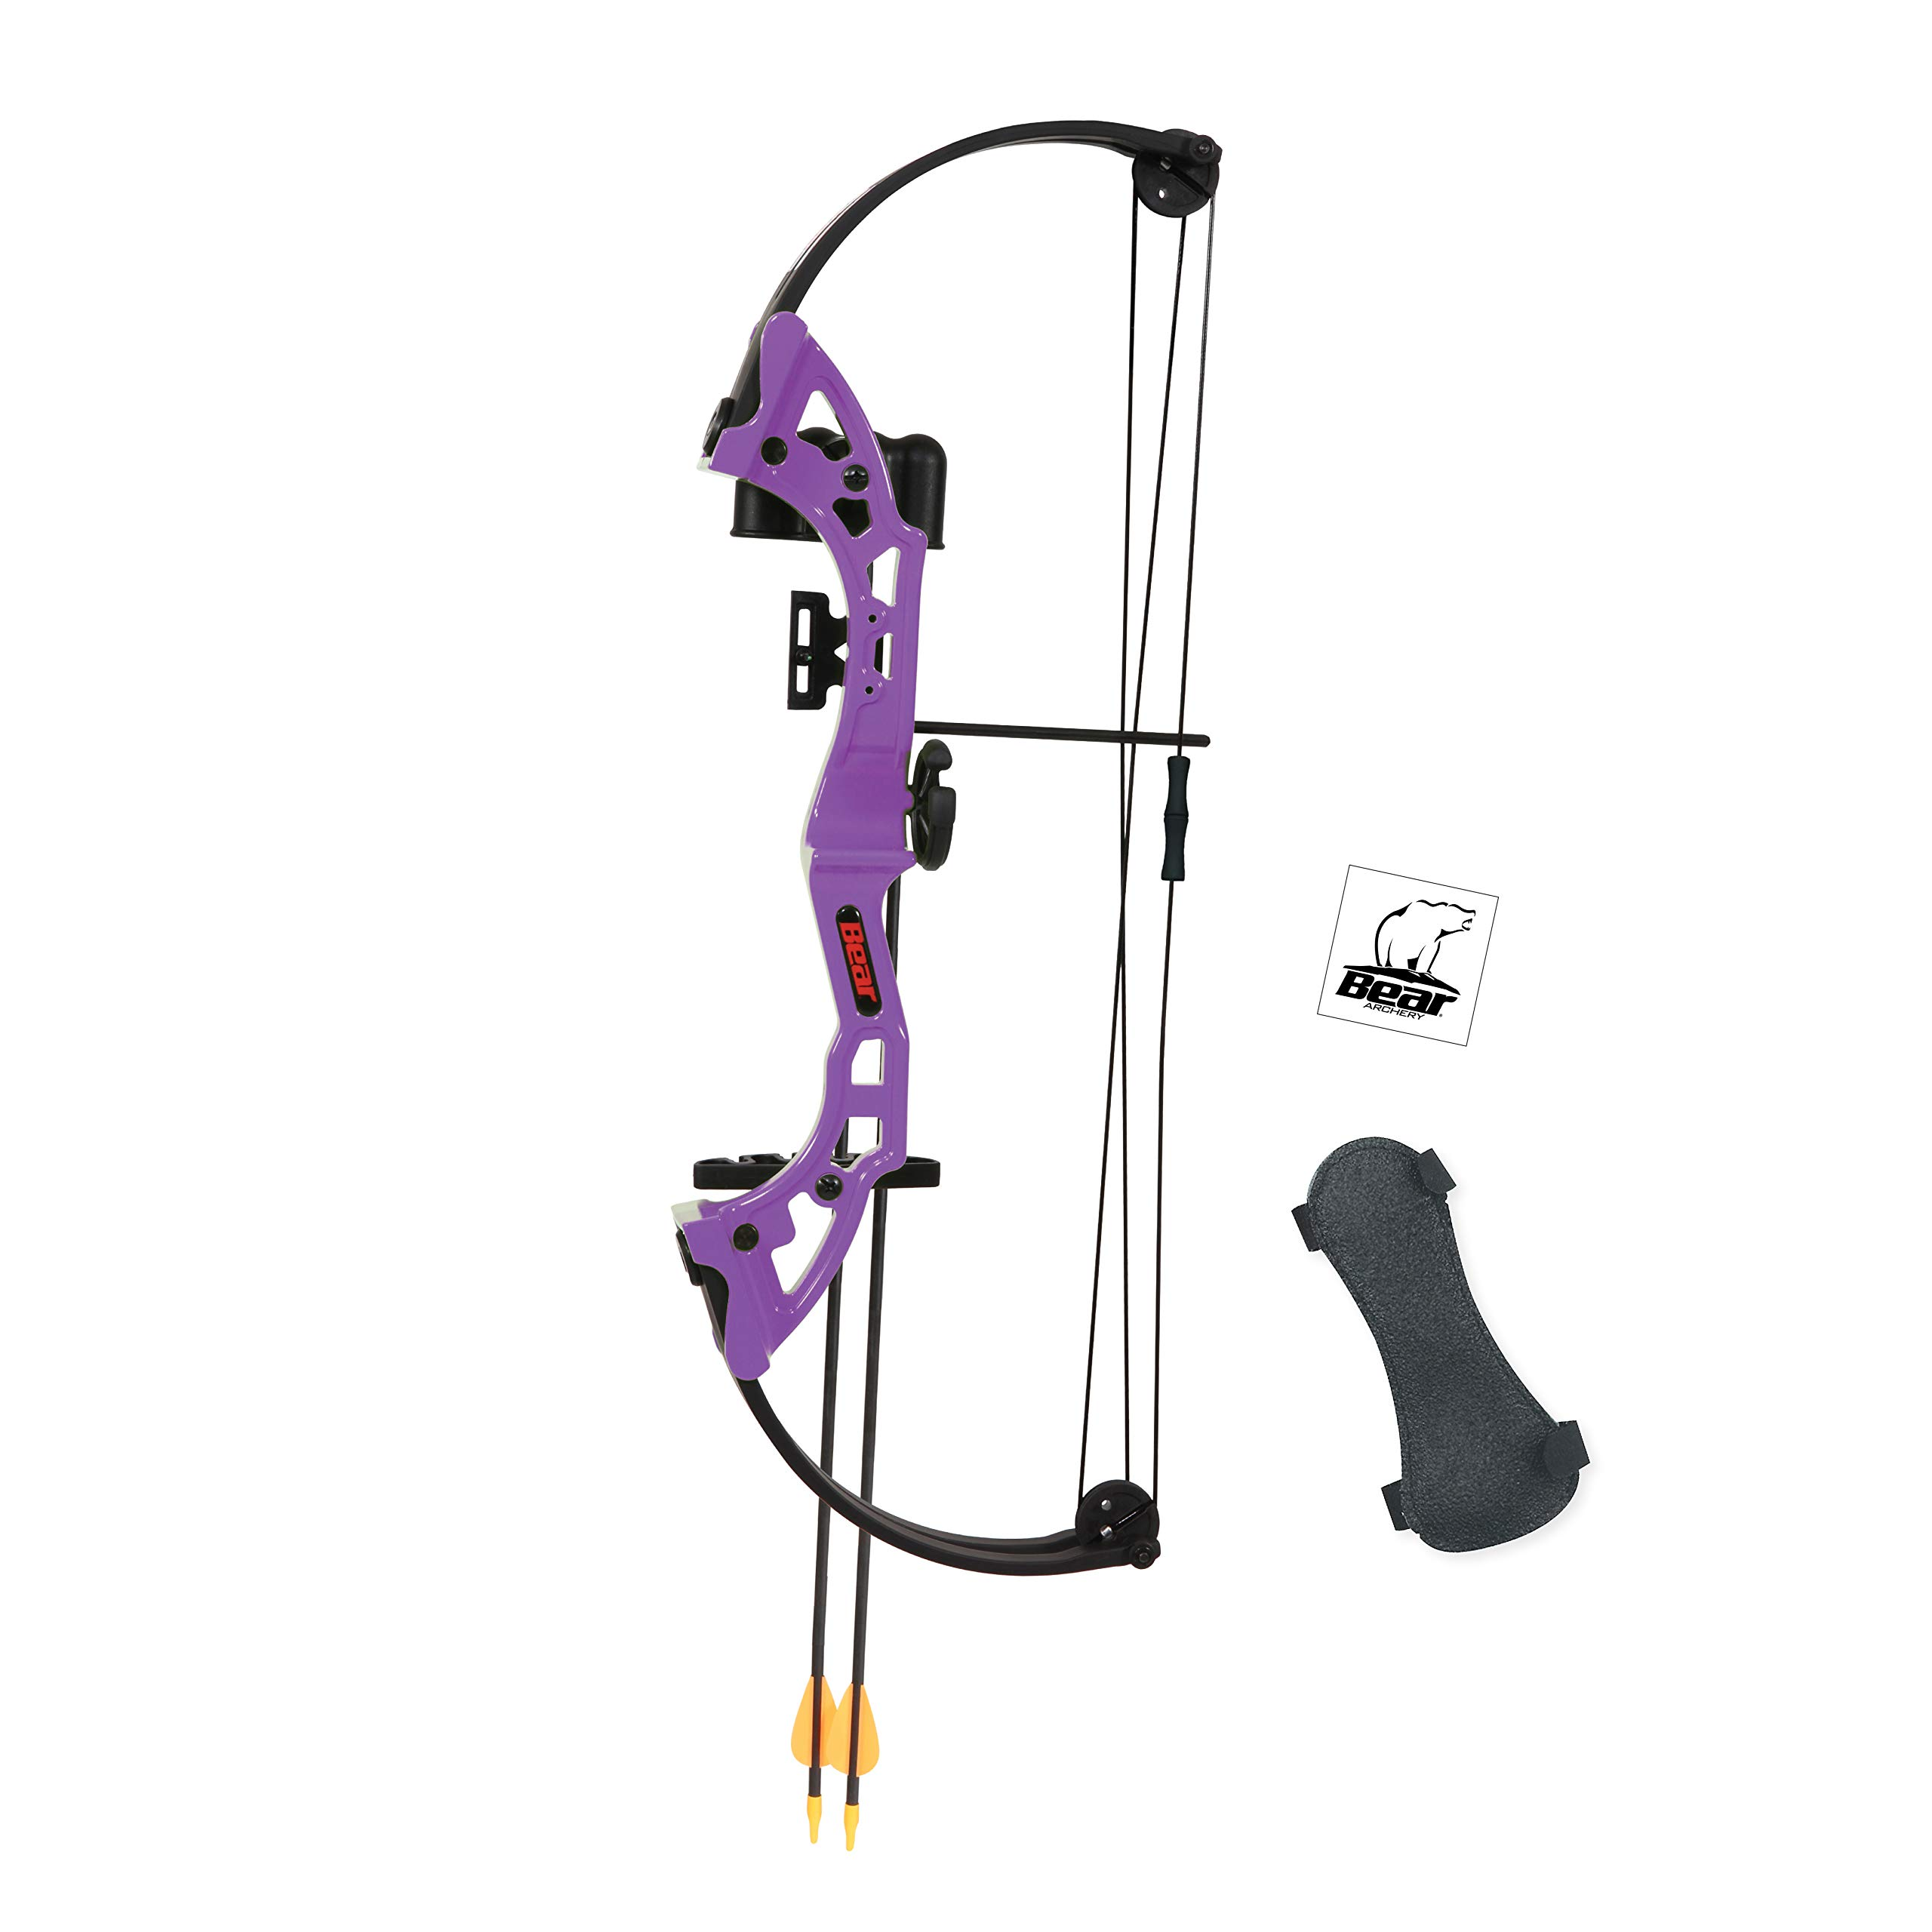 Bear Archery Brave Youth Bow - Purple by Bear Archery